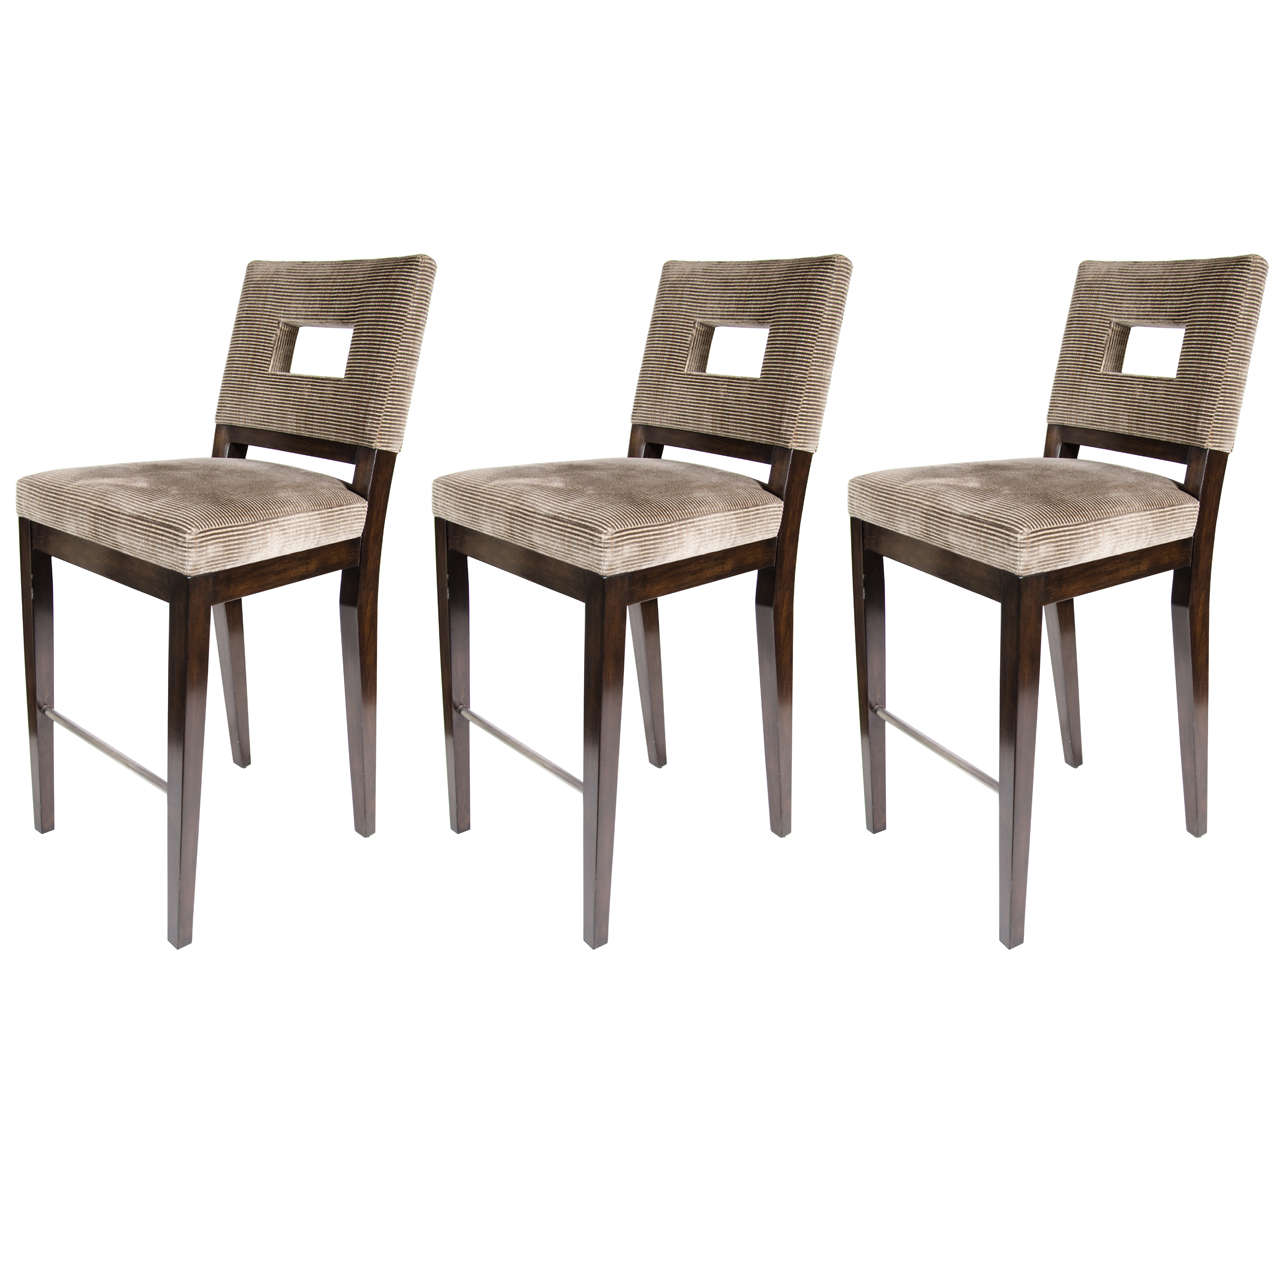 Upholstered Bar Chairs Set Of Three Mid Century Modern Bar Stools With Cut Out Back Design